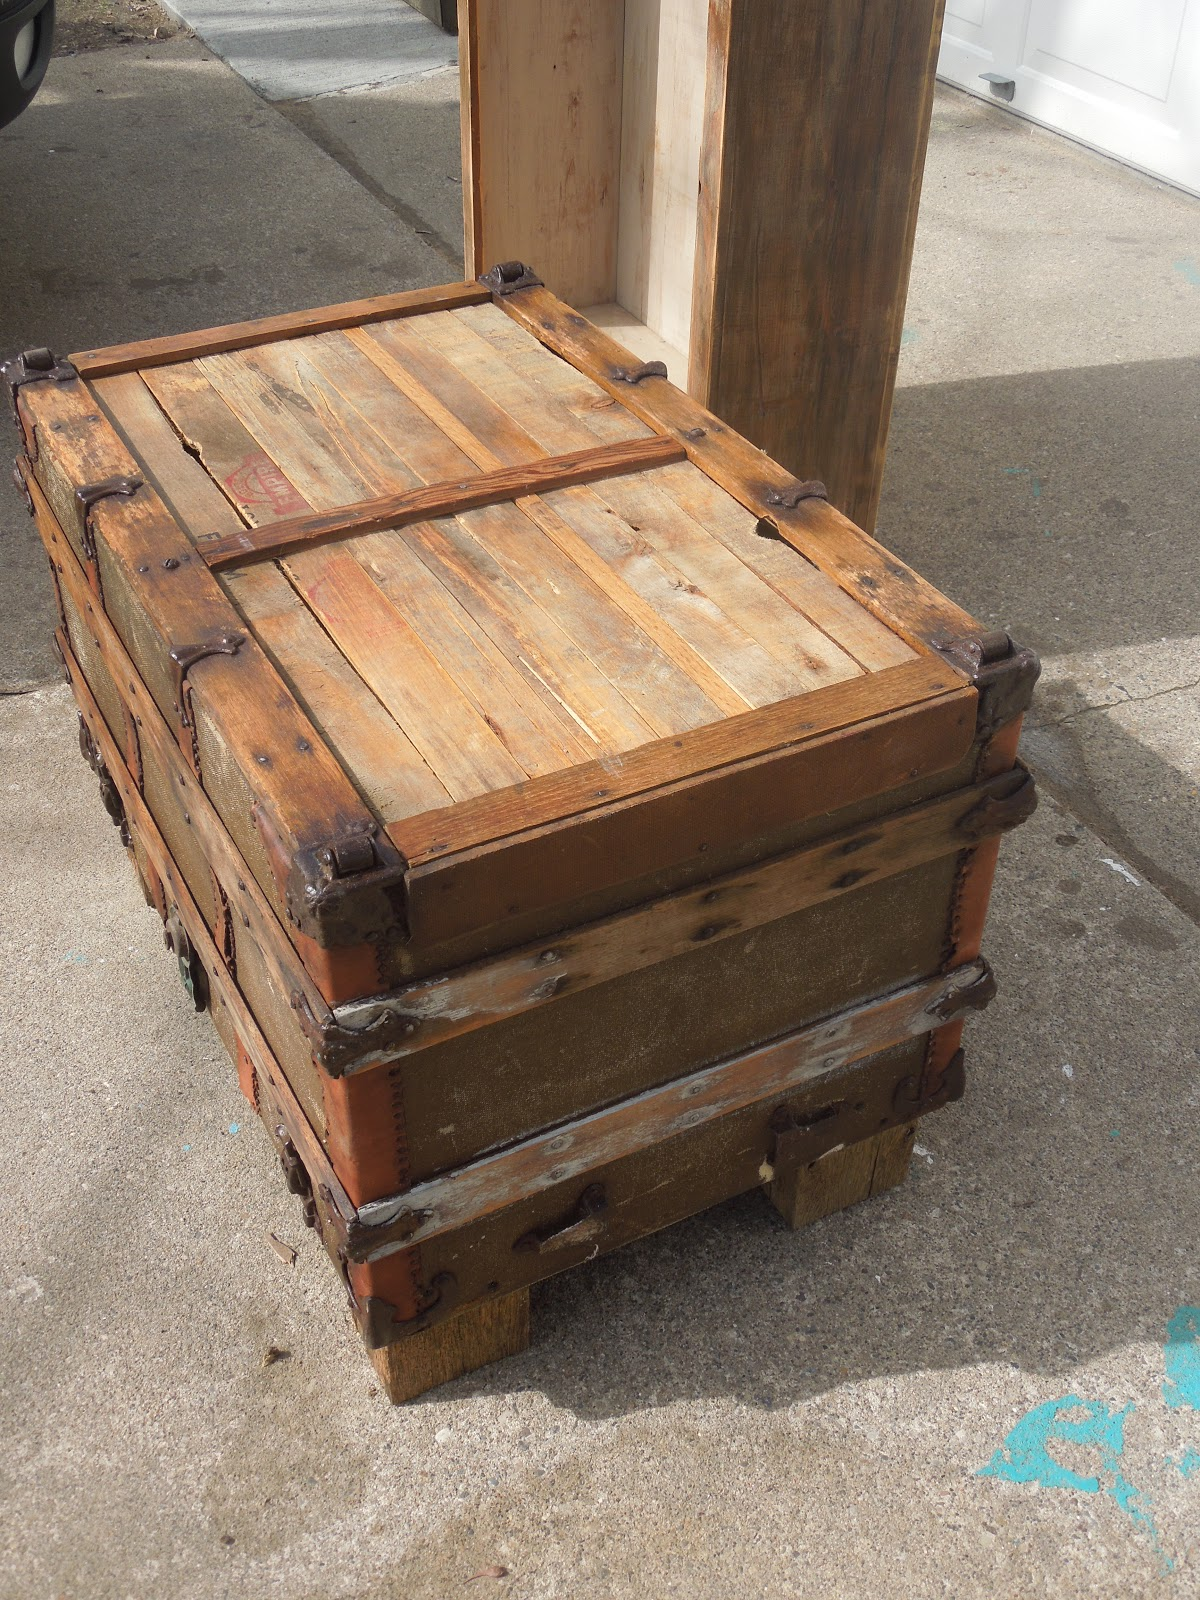 Tattered lantern old trunk coffee table sold Old trunks as coffee tables